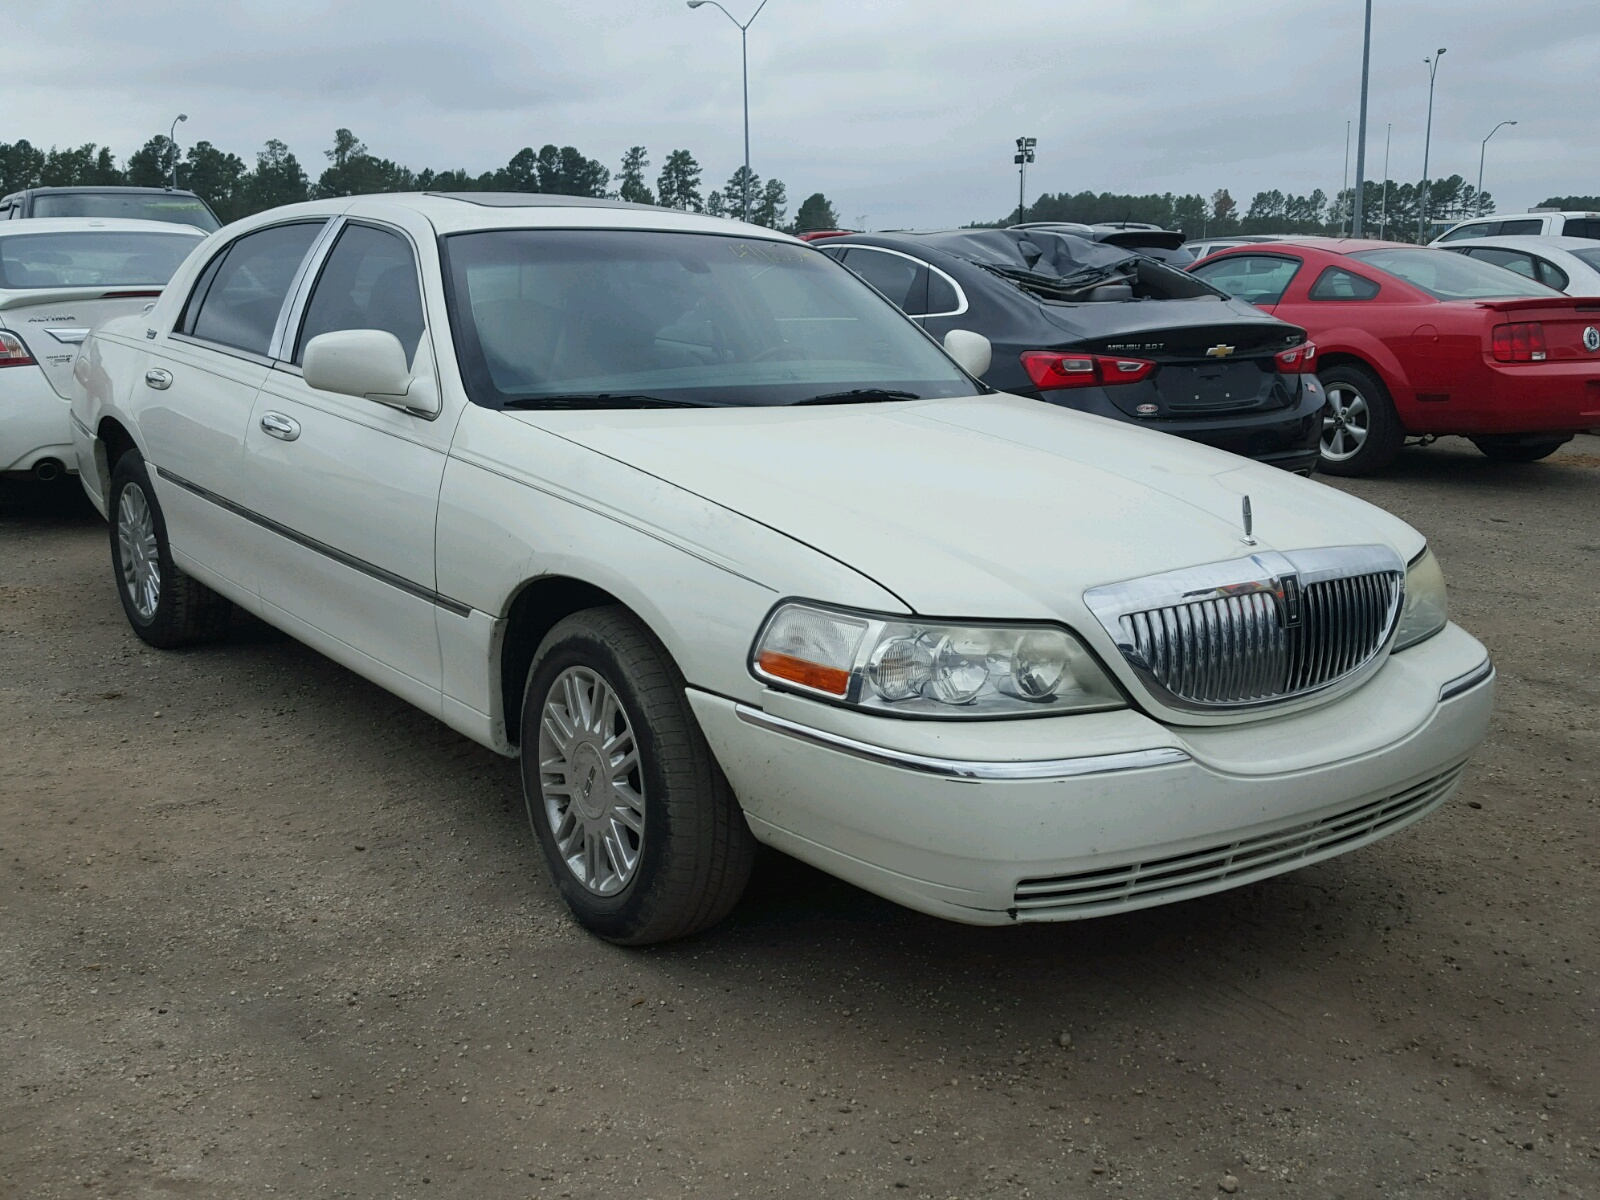 Salvage 2006 Lincoln TOWN CAR S for sale